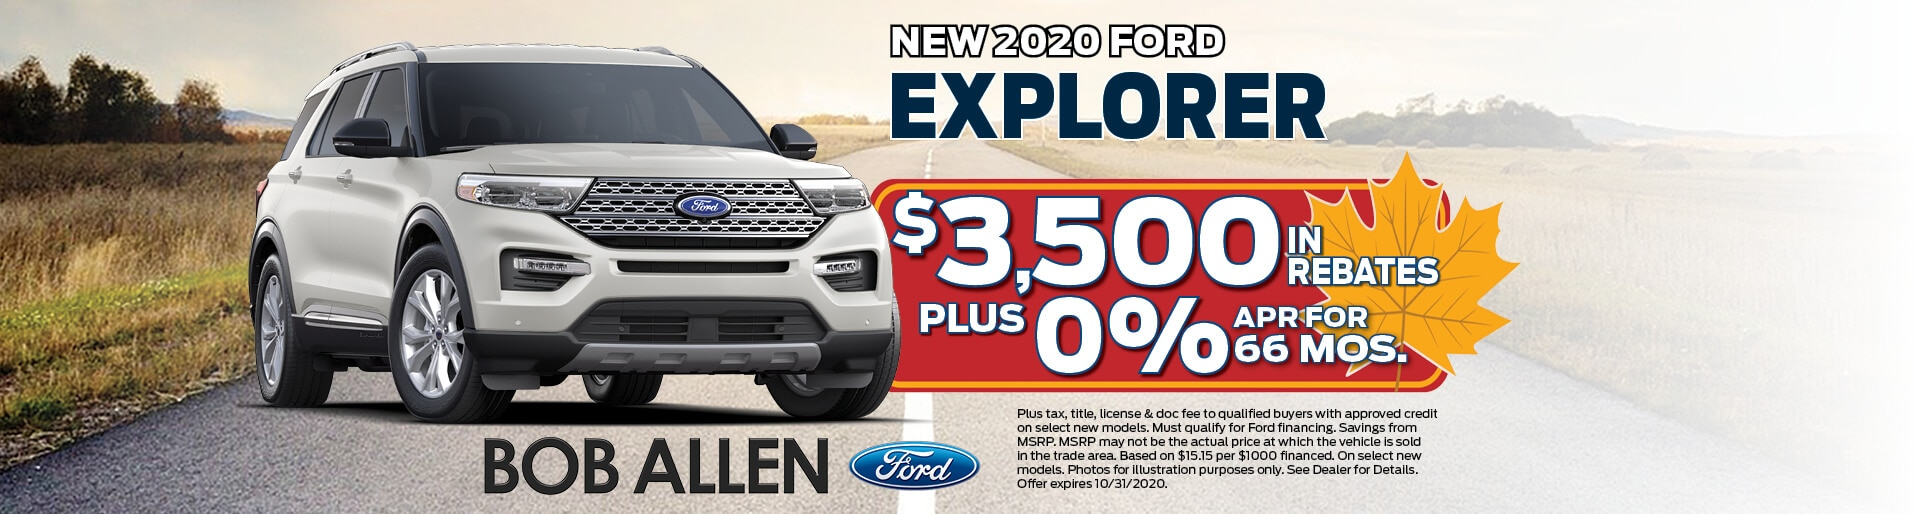 2020 Ford Eplorer | $3,500 in rebates + 0% APR after 66 Mos. | Overland Park, KS